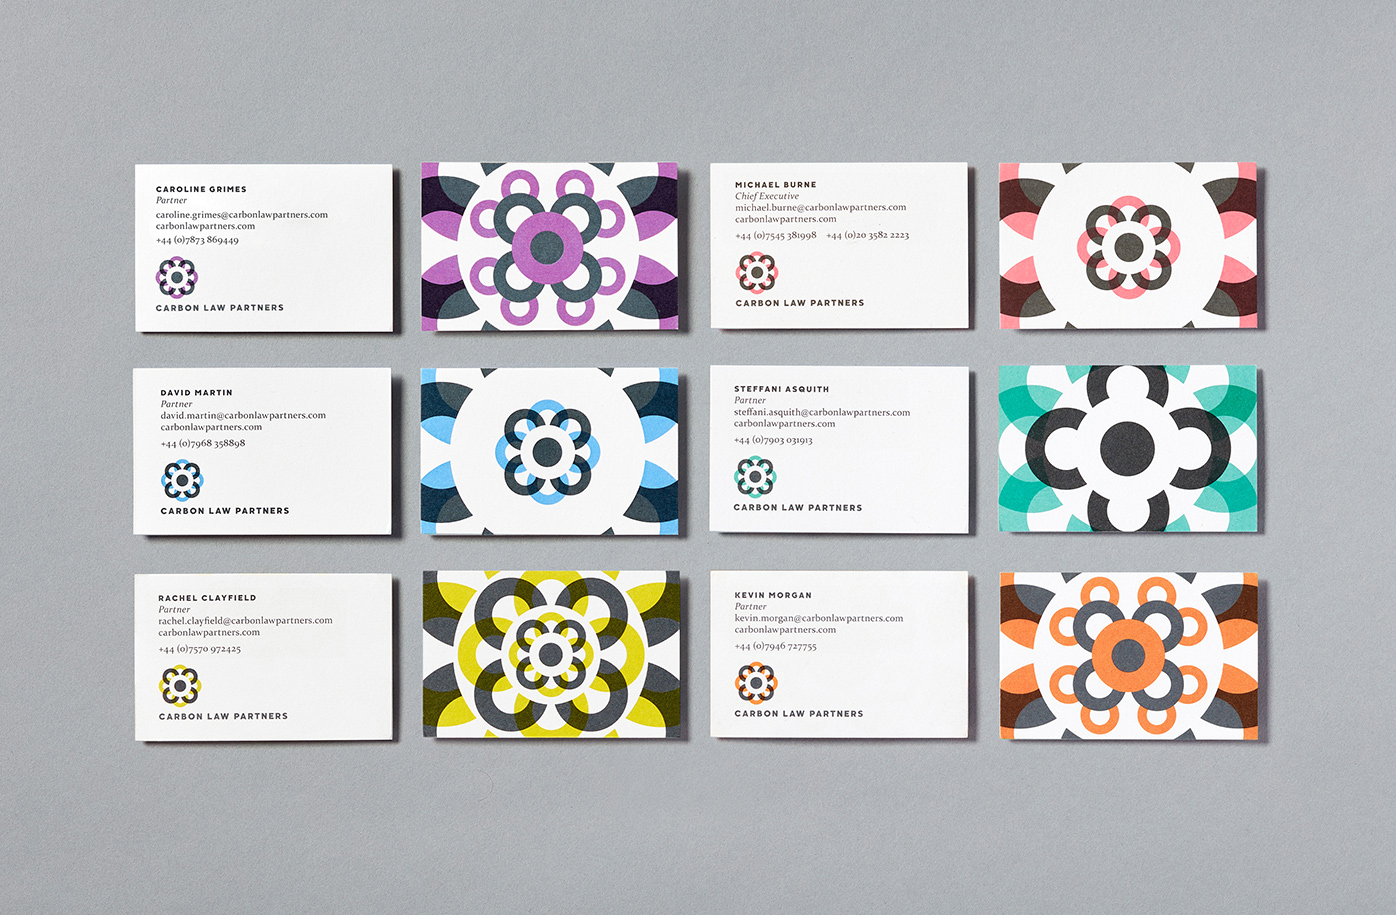 Carbon law partners business cards